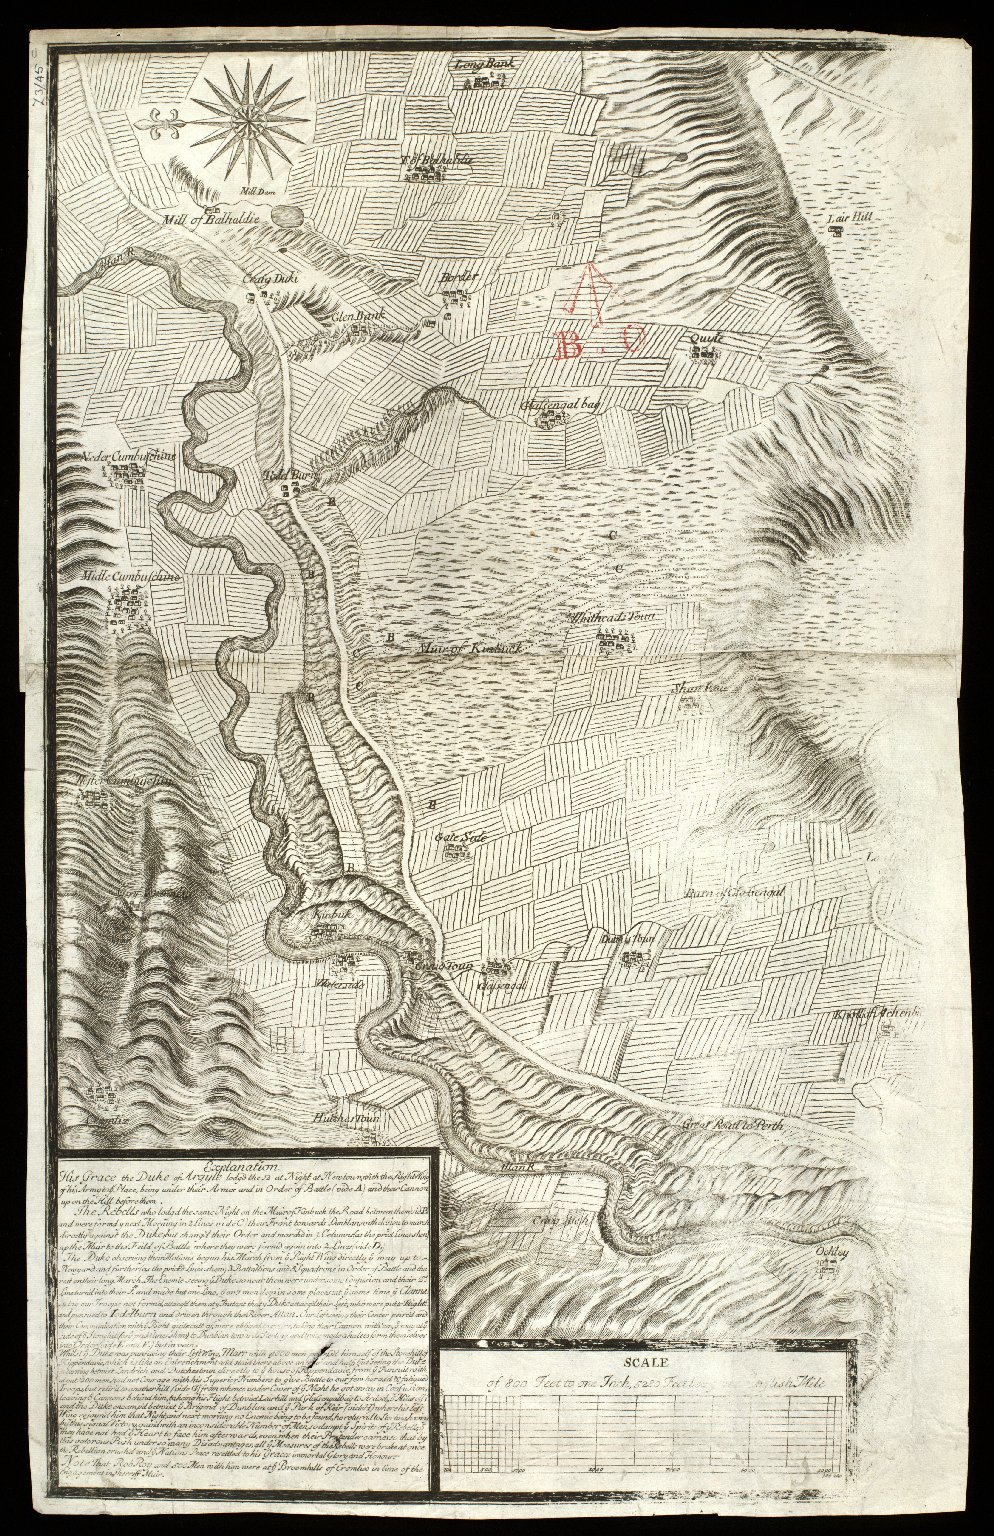 [Plan of the Battle of Sheriffmuir, fought 13 November 1715] [copy] [1 of 1]